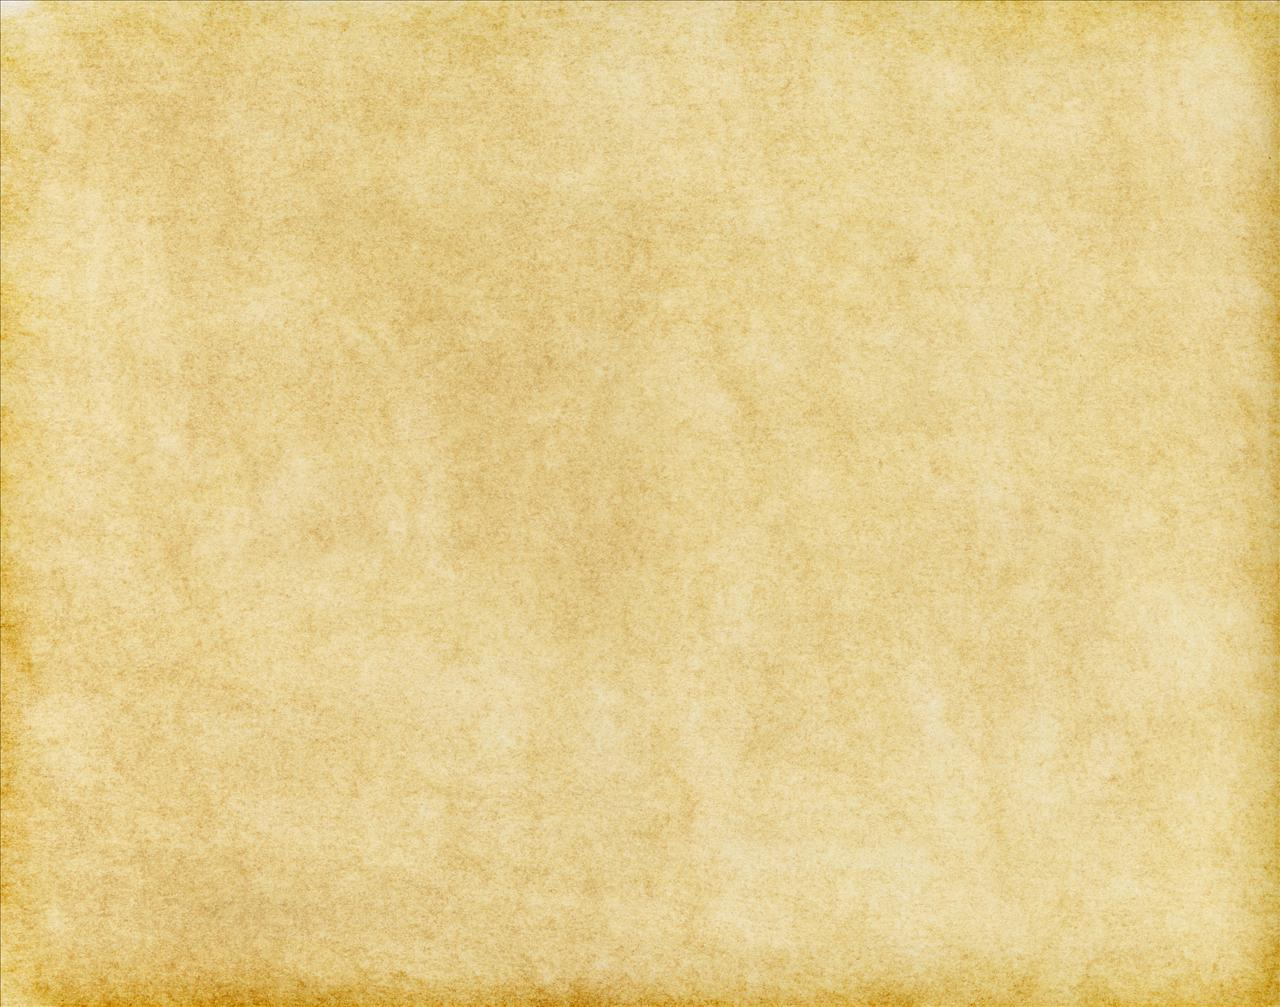 Old Book Paper Background | galleryhip.com - The Hippest Galleries!